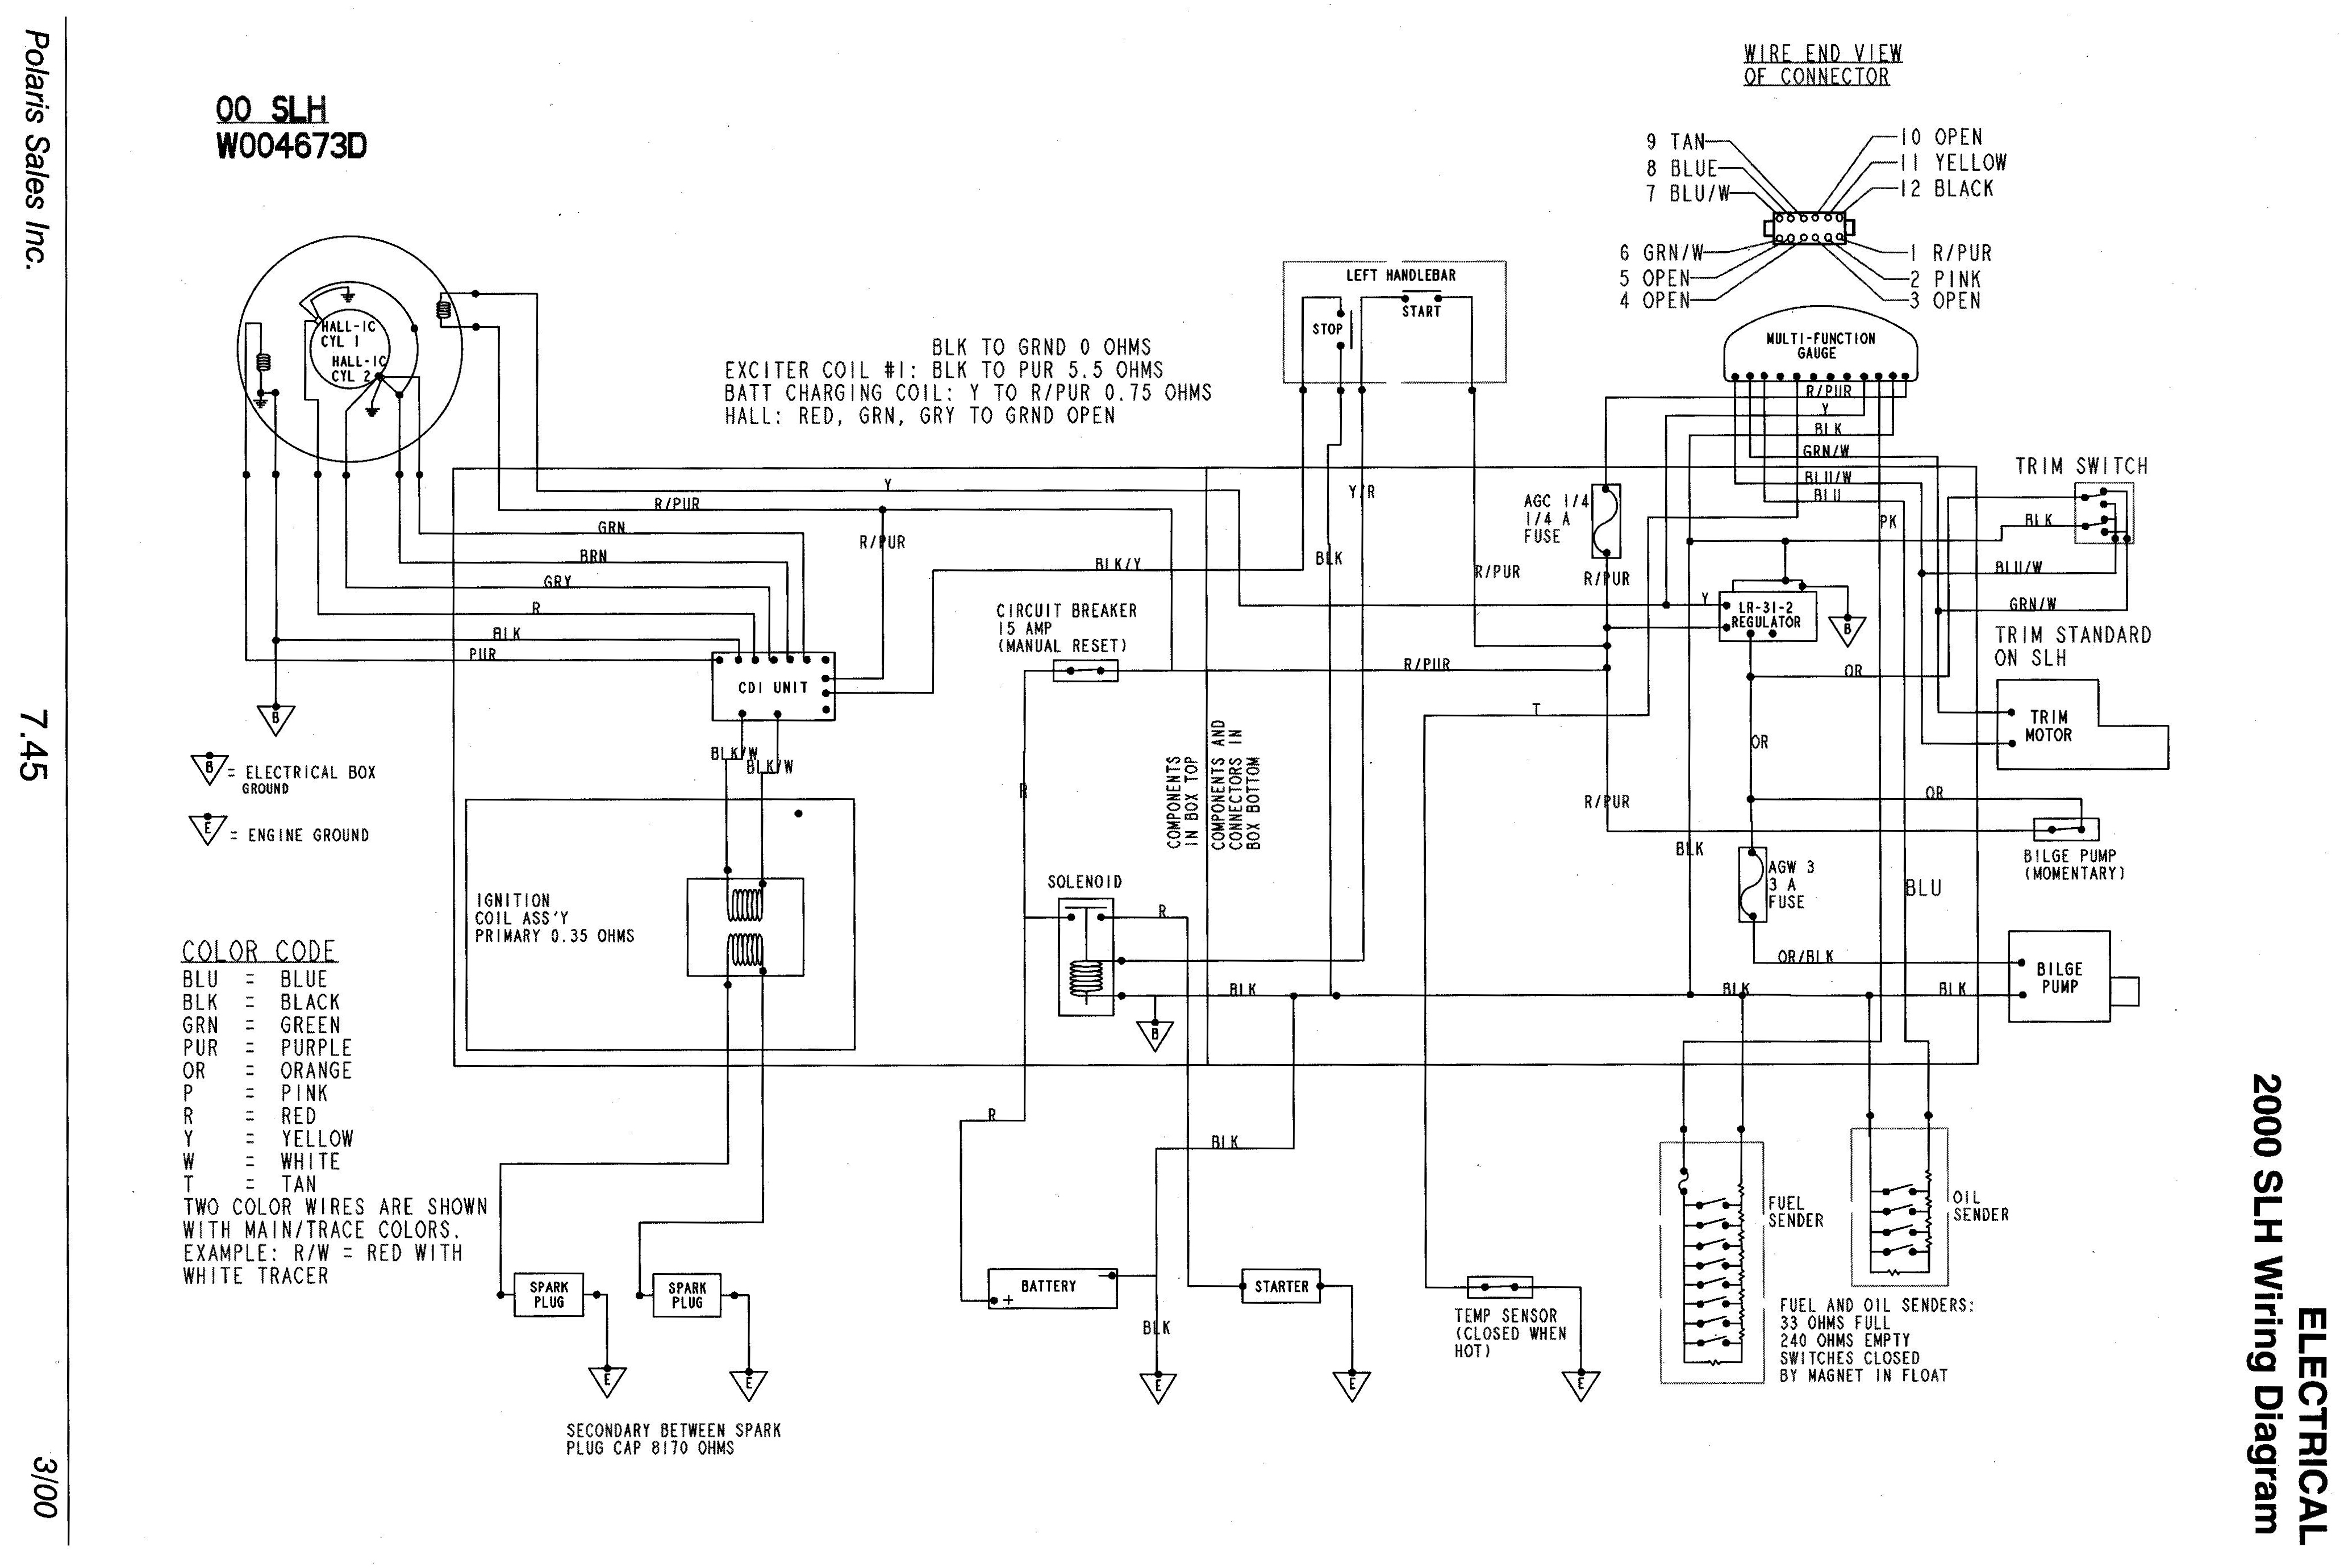 looking for wiring diagram for a 99 slh help